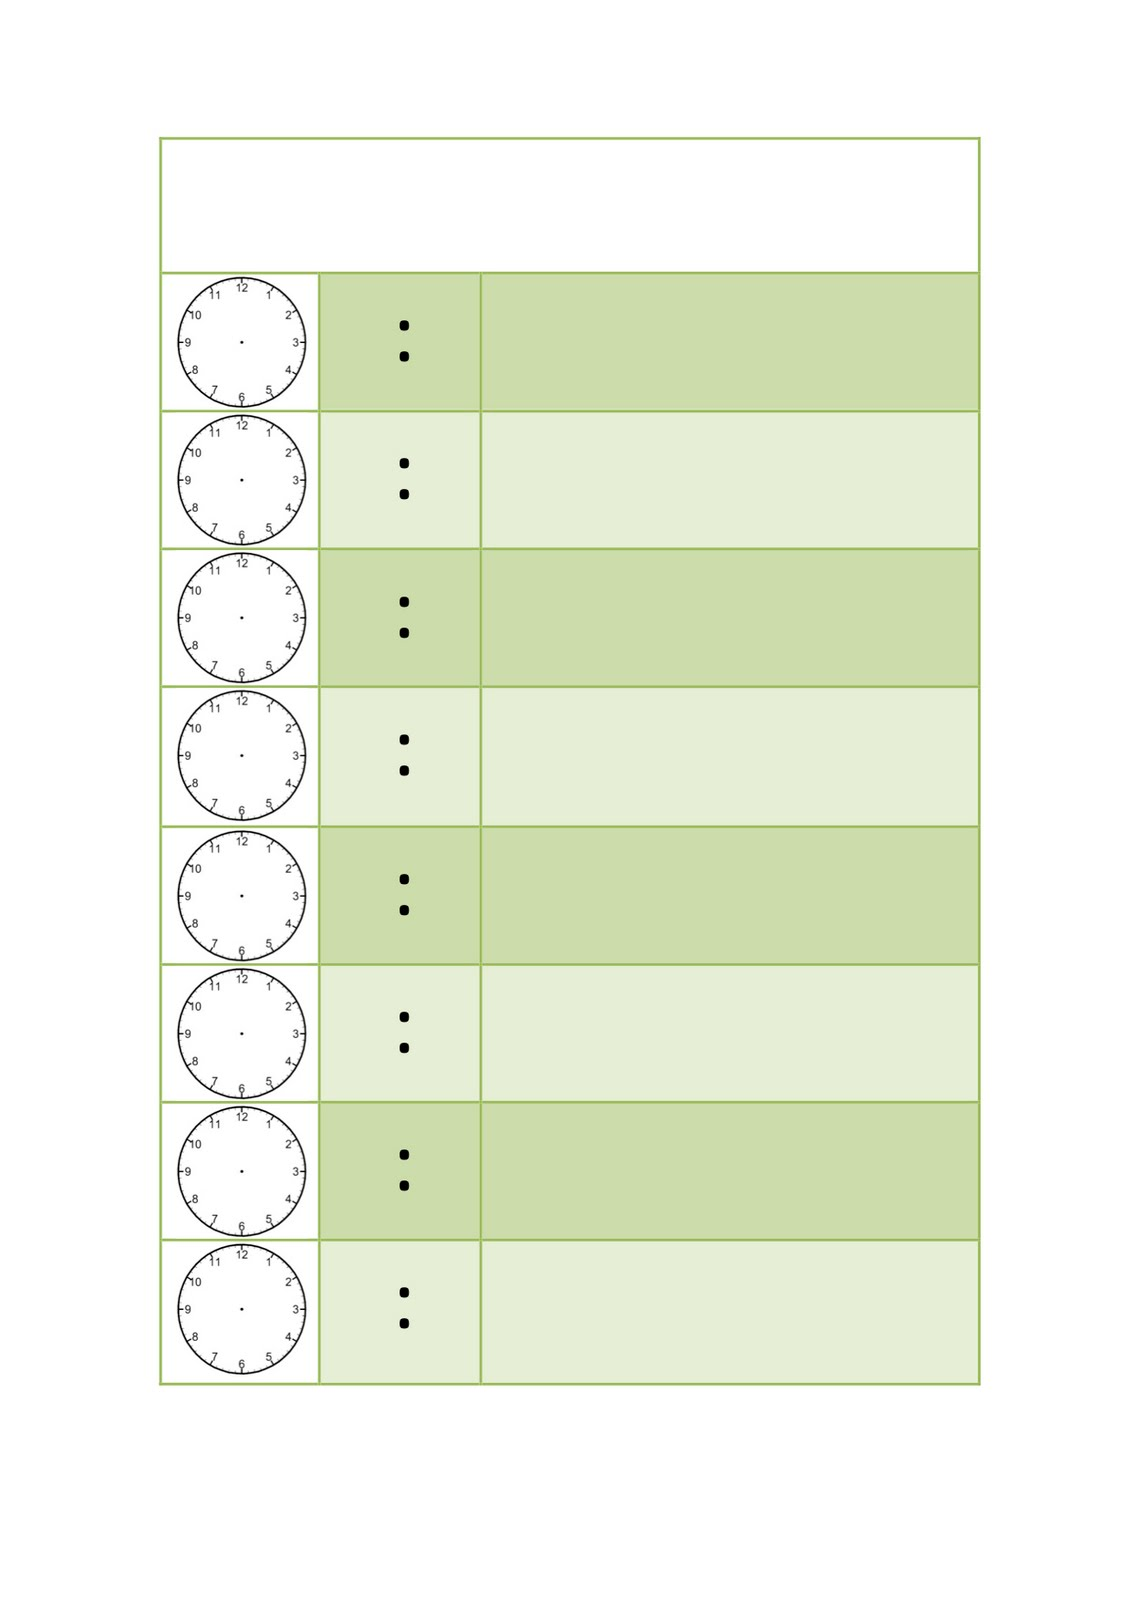 mokas as promised a busy day schedule template